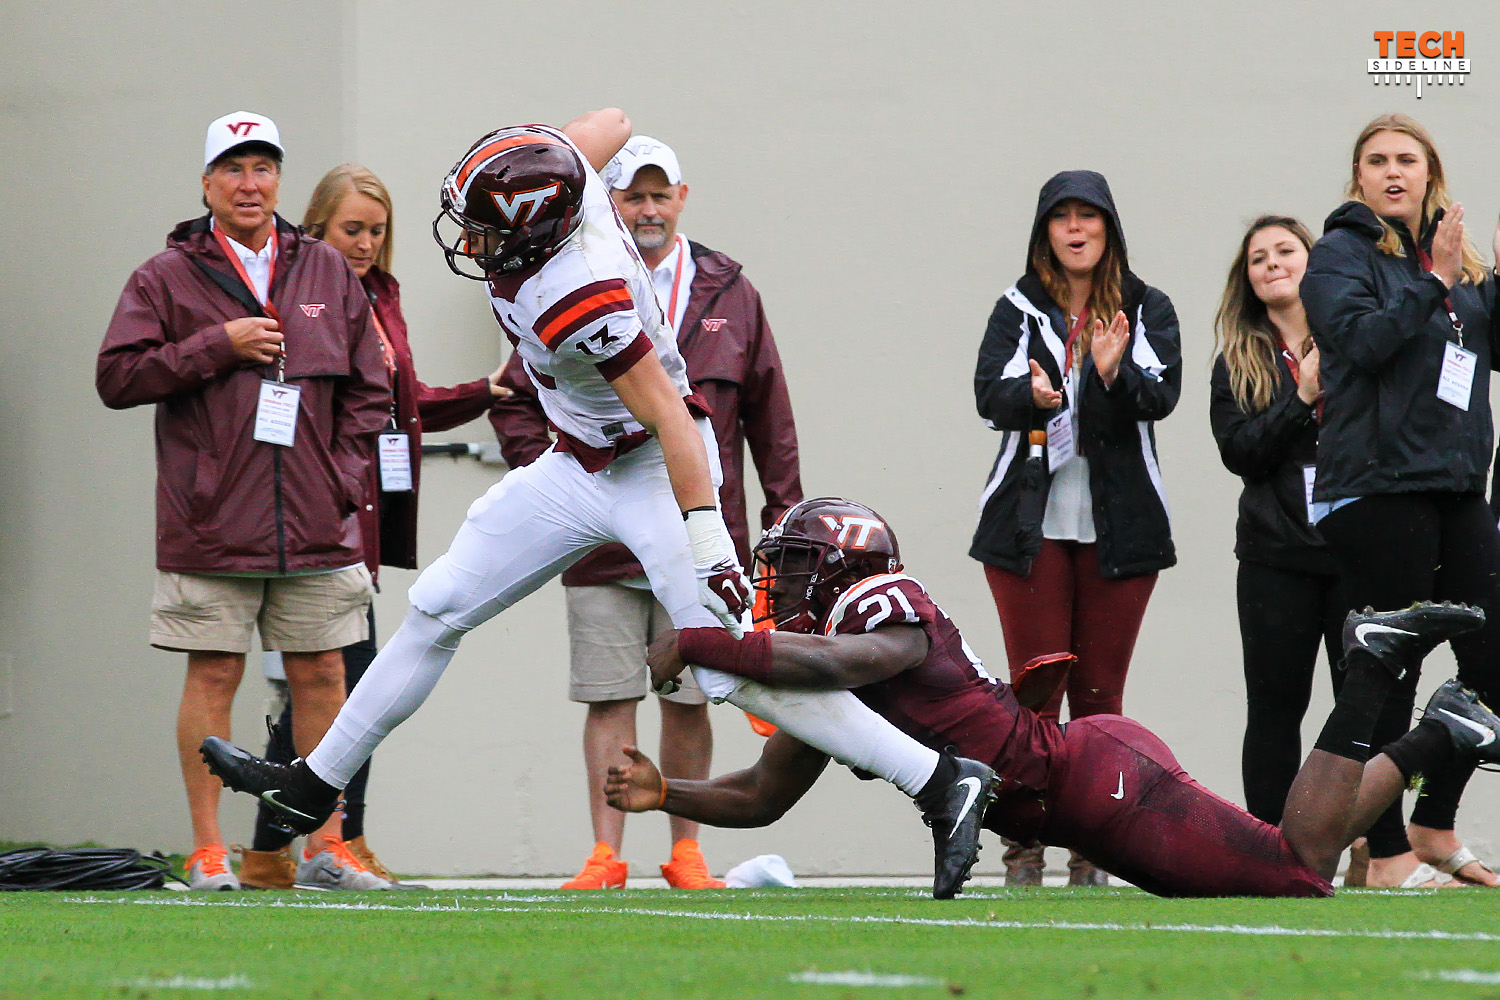 Virginia Tech loses freshman receiver Caleb Farley to a knee injury